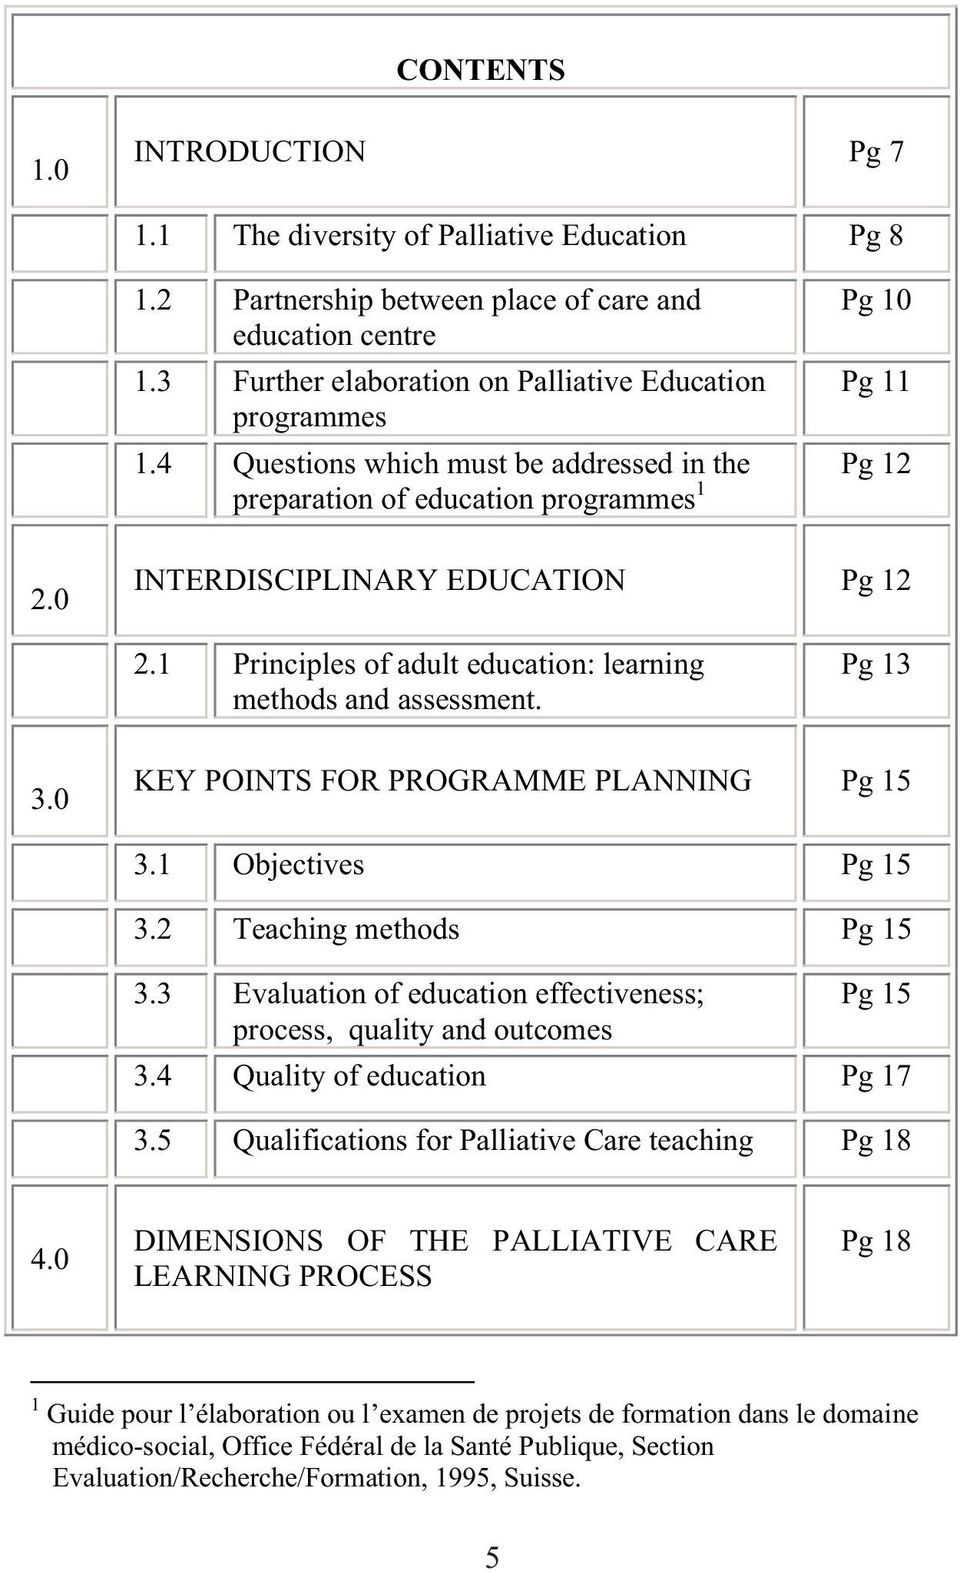 1 Principles of adult education: learning methods and assessment. Pg 13 3.0 KEY POINTS FOR PROGRAMME PLANNING Pg 15 3.1 Objectives Pg 15 3.2 Teaching methods Pg 15 3.